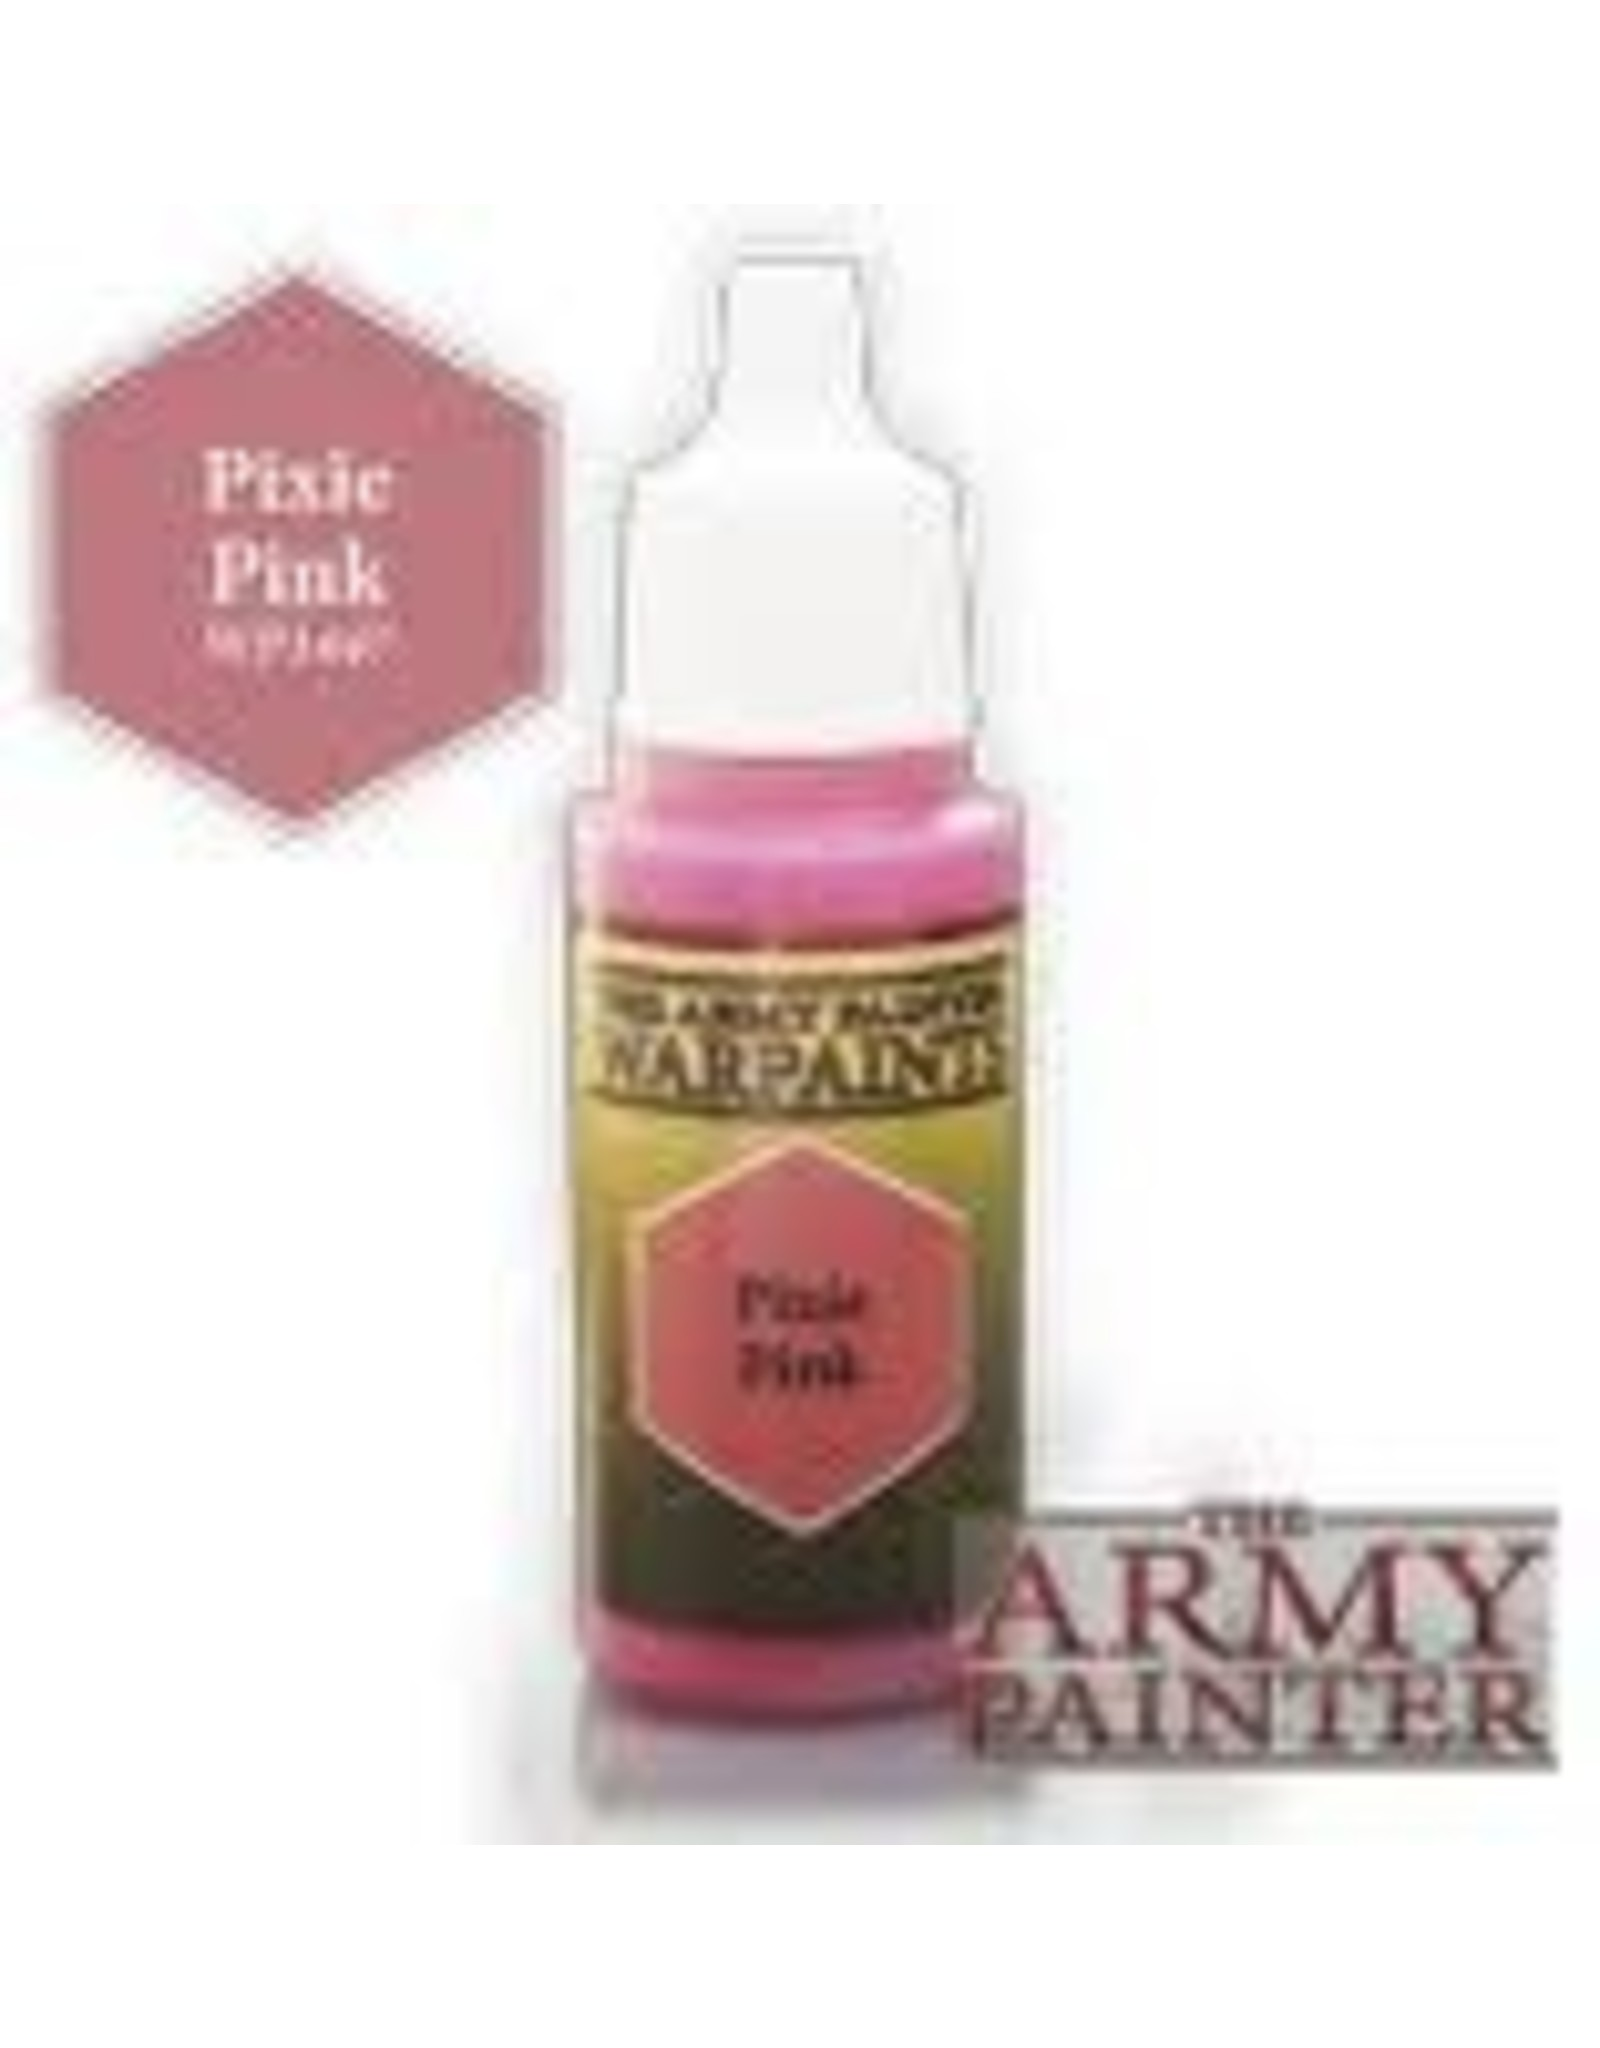 Army Painter Army Painter: Pixie Pink